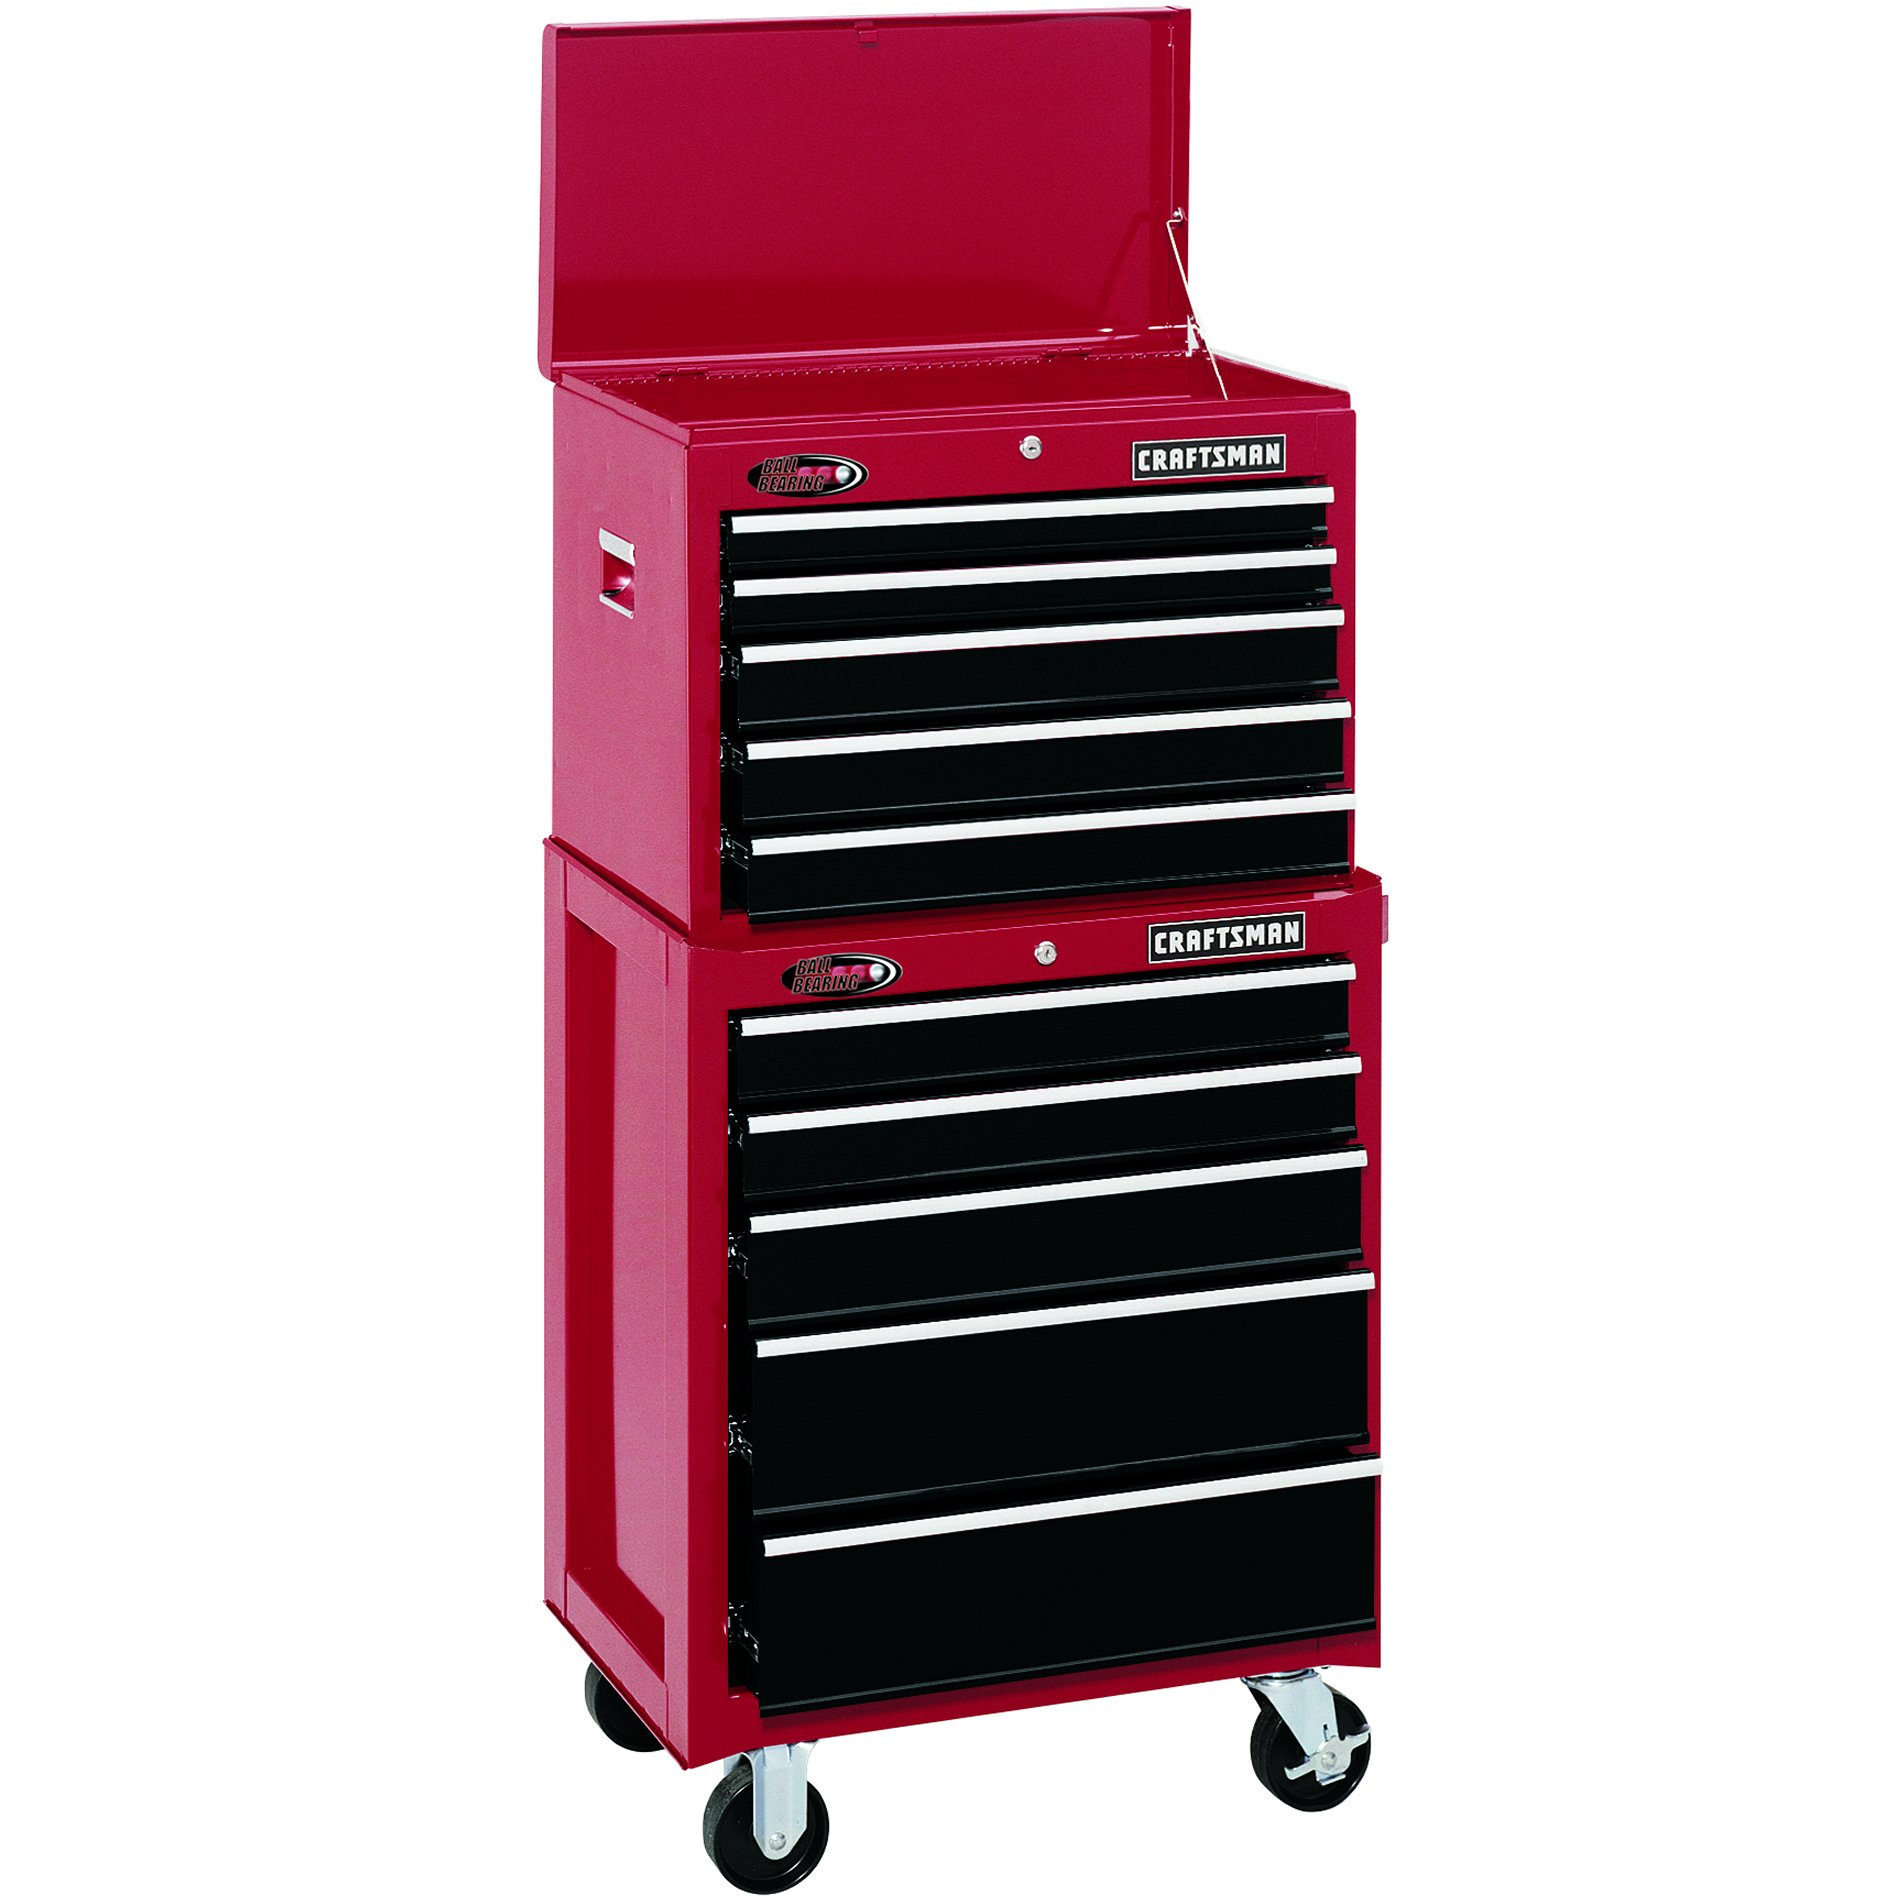 "Craftsman 26"" Wide 5-Drawer Ball-Bearing Bottom Chest - Red/Black"